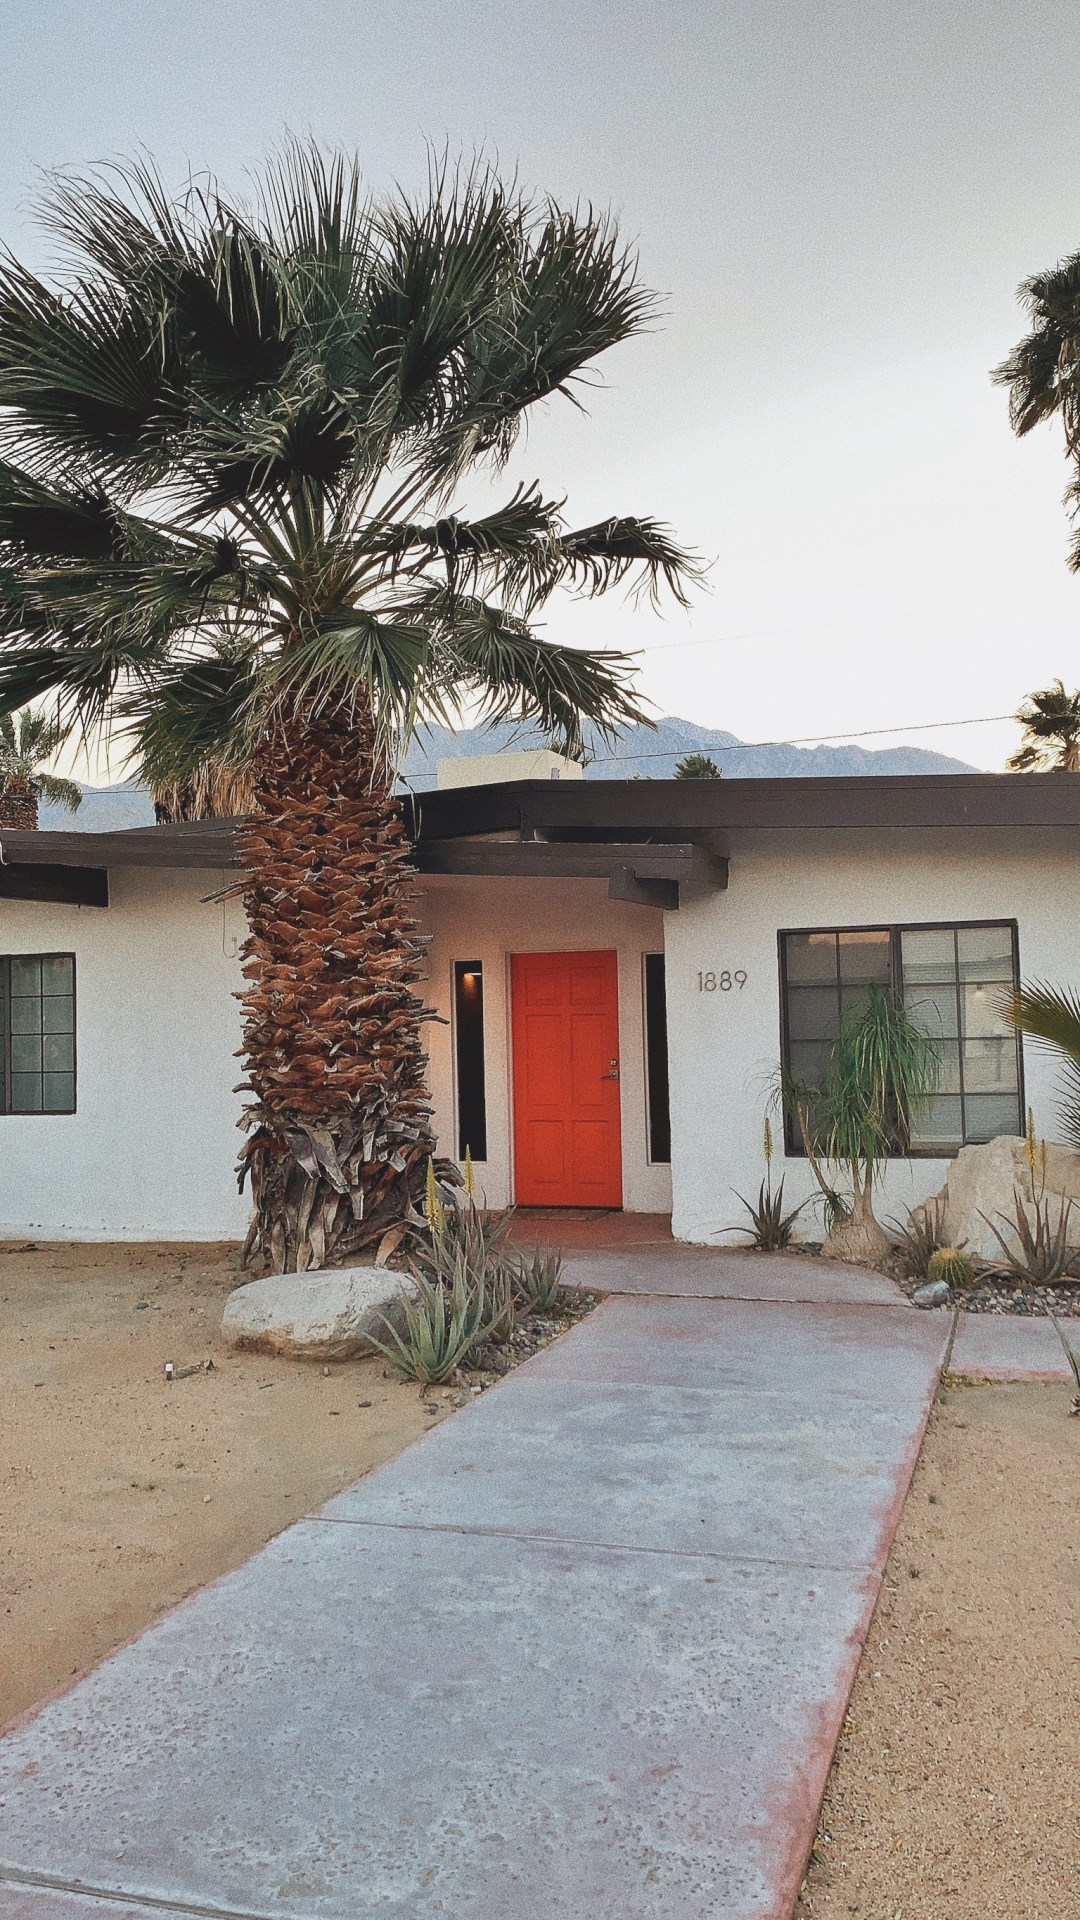 home away home, California homes, where to stay in Palm Springs,